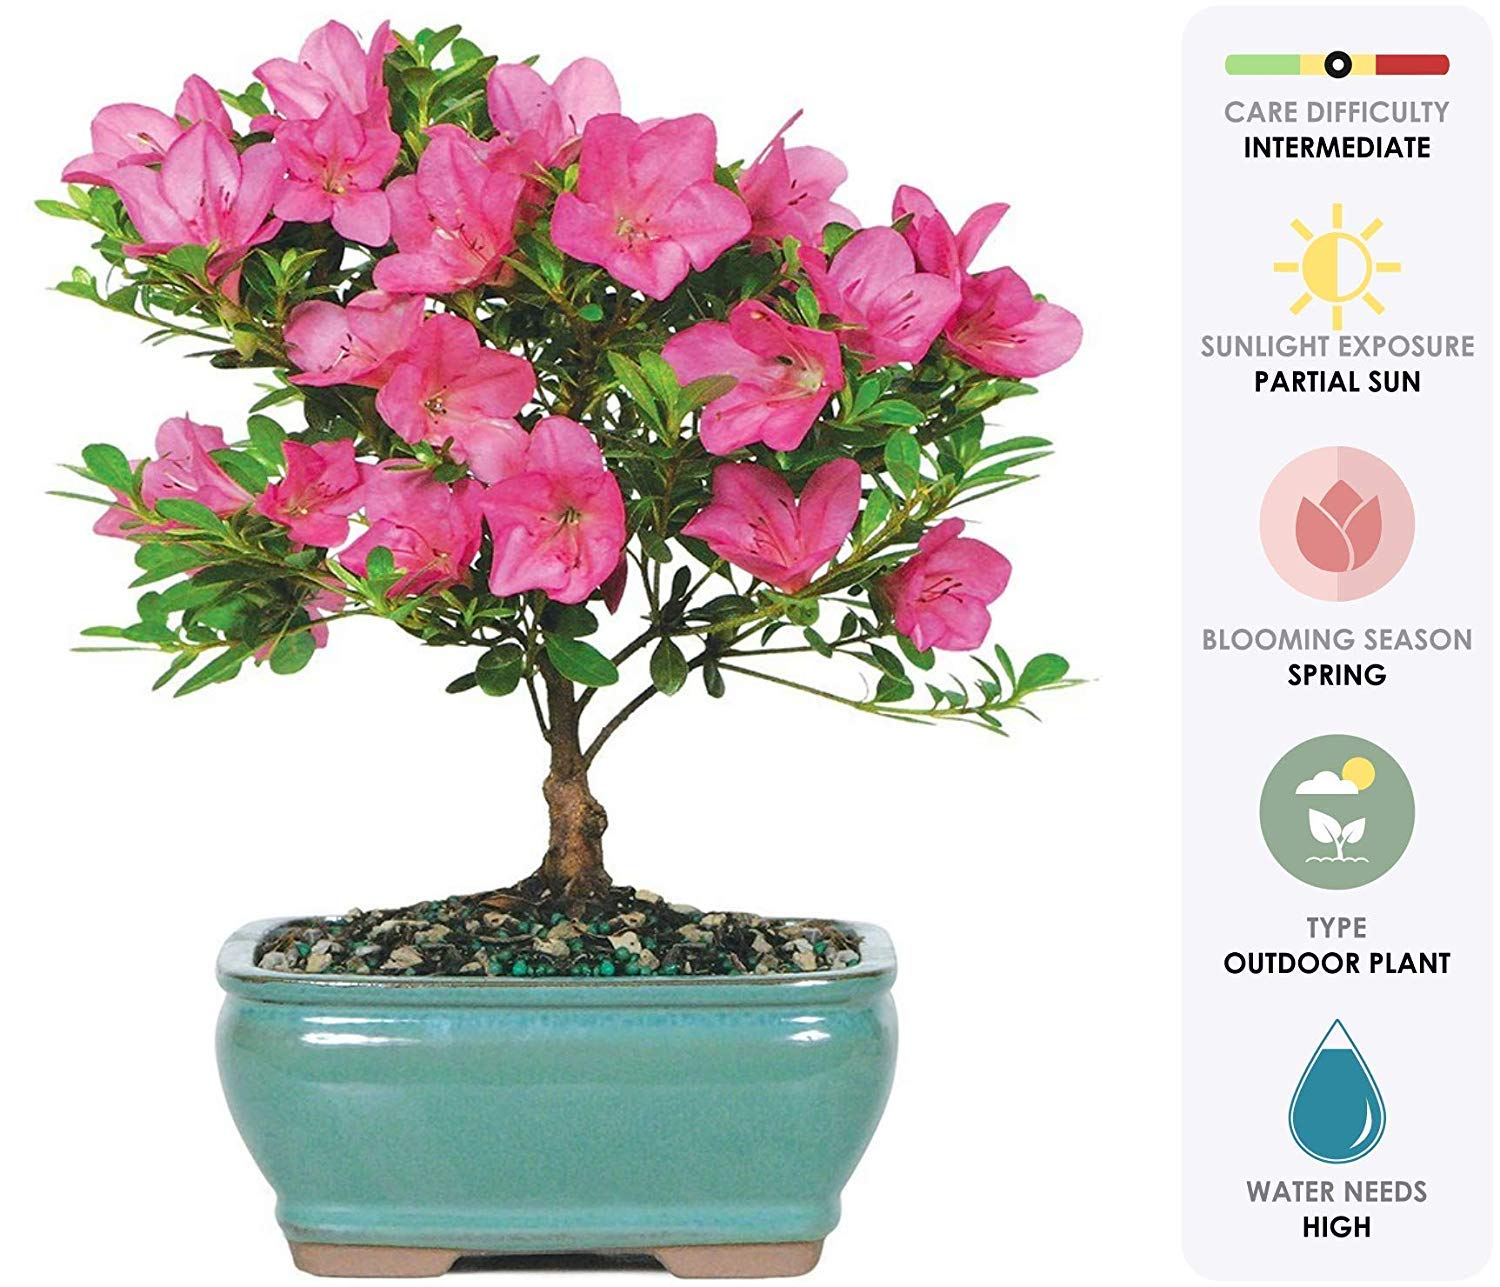 Brussel's Bonsai Live Satsuki Azalea Outdoor Bonsai Tree-5 Years Old 6'' to 8'' Tall with Decorative Container, Small,